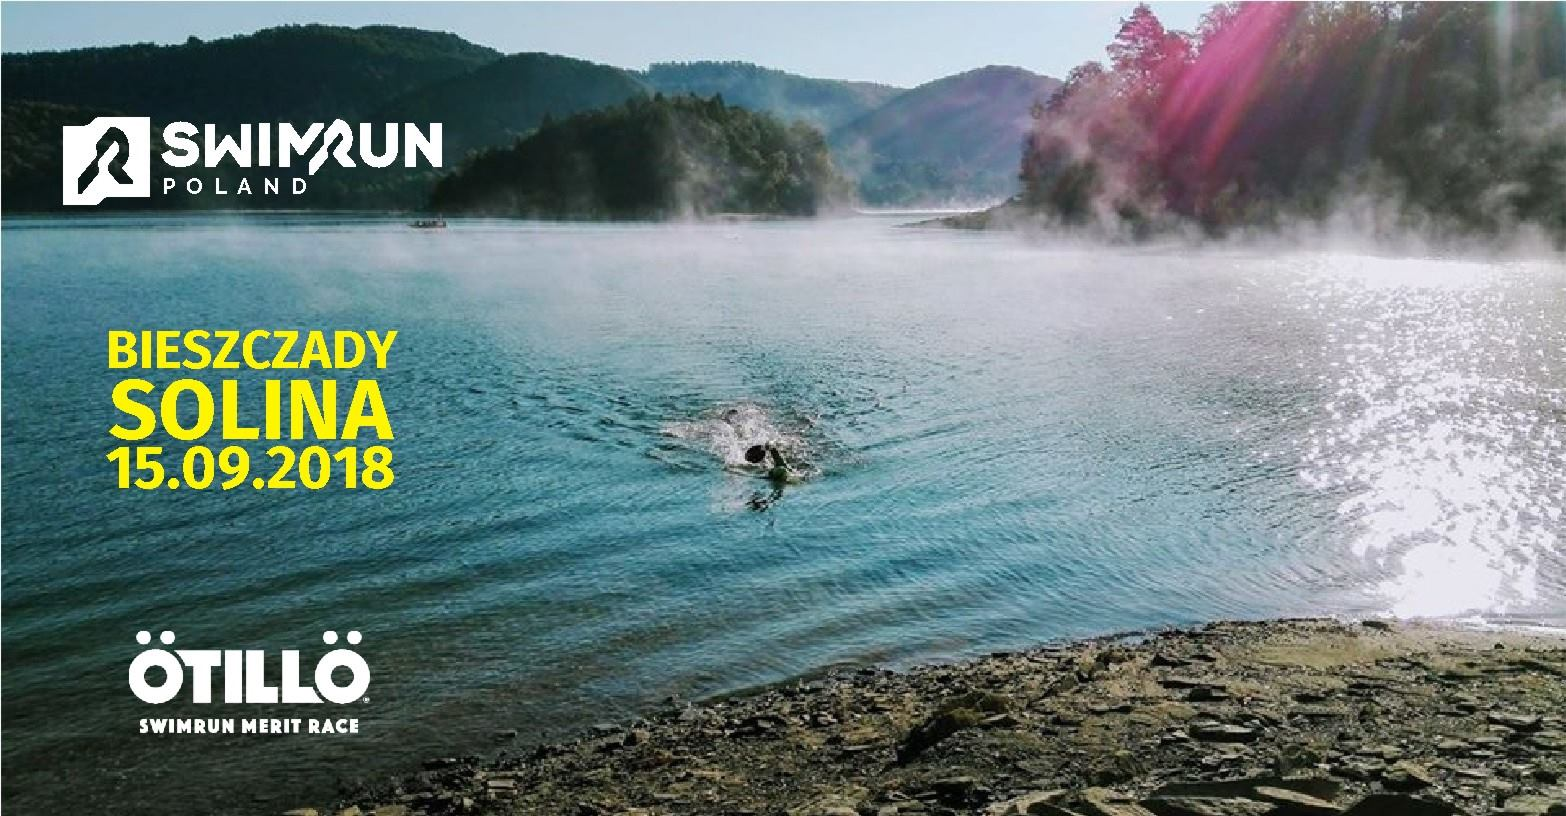 Swimrun Poland Solina 2018 - Ötillö Merit Race - Polańczyk, 15.09.2018